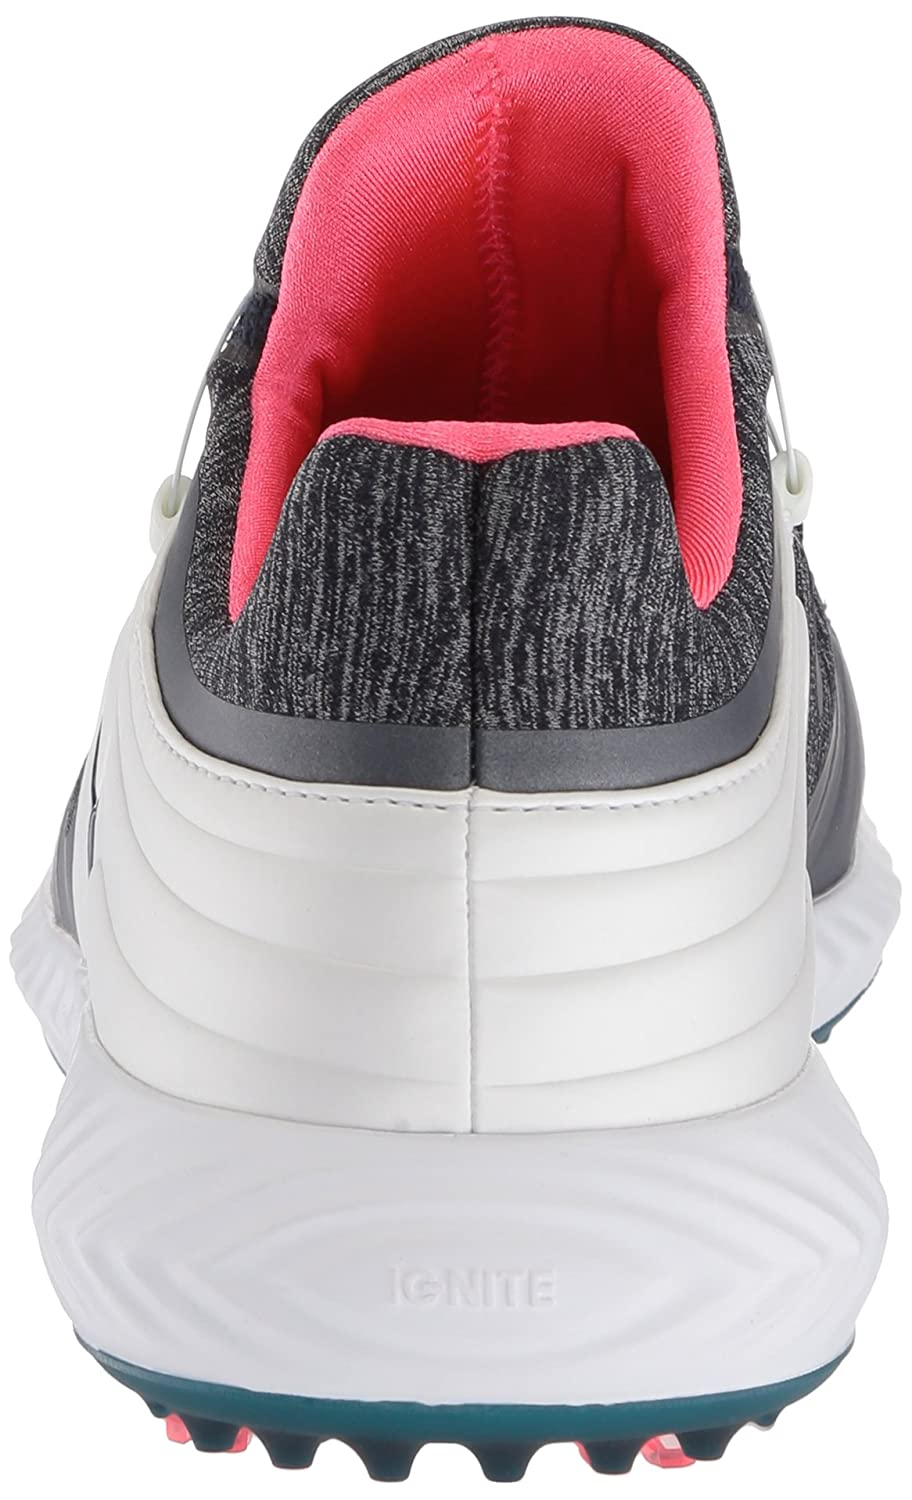 PUMA Women's Golf Ignite Blaze Sport Disc Golf Women's Shoe B074ZHMRFH 8.5 B(M) US|Peacoat/White c6e8ad